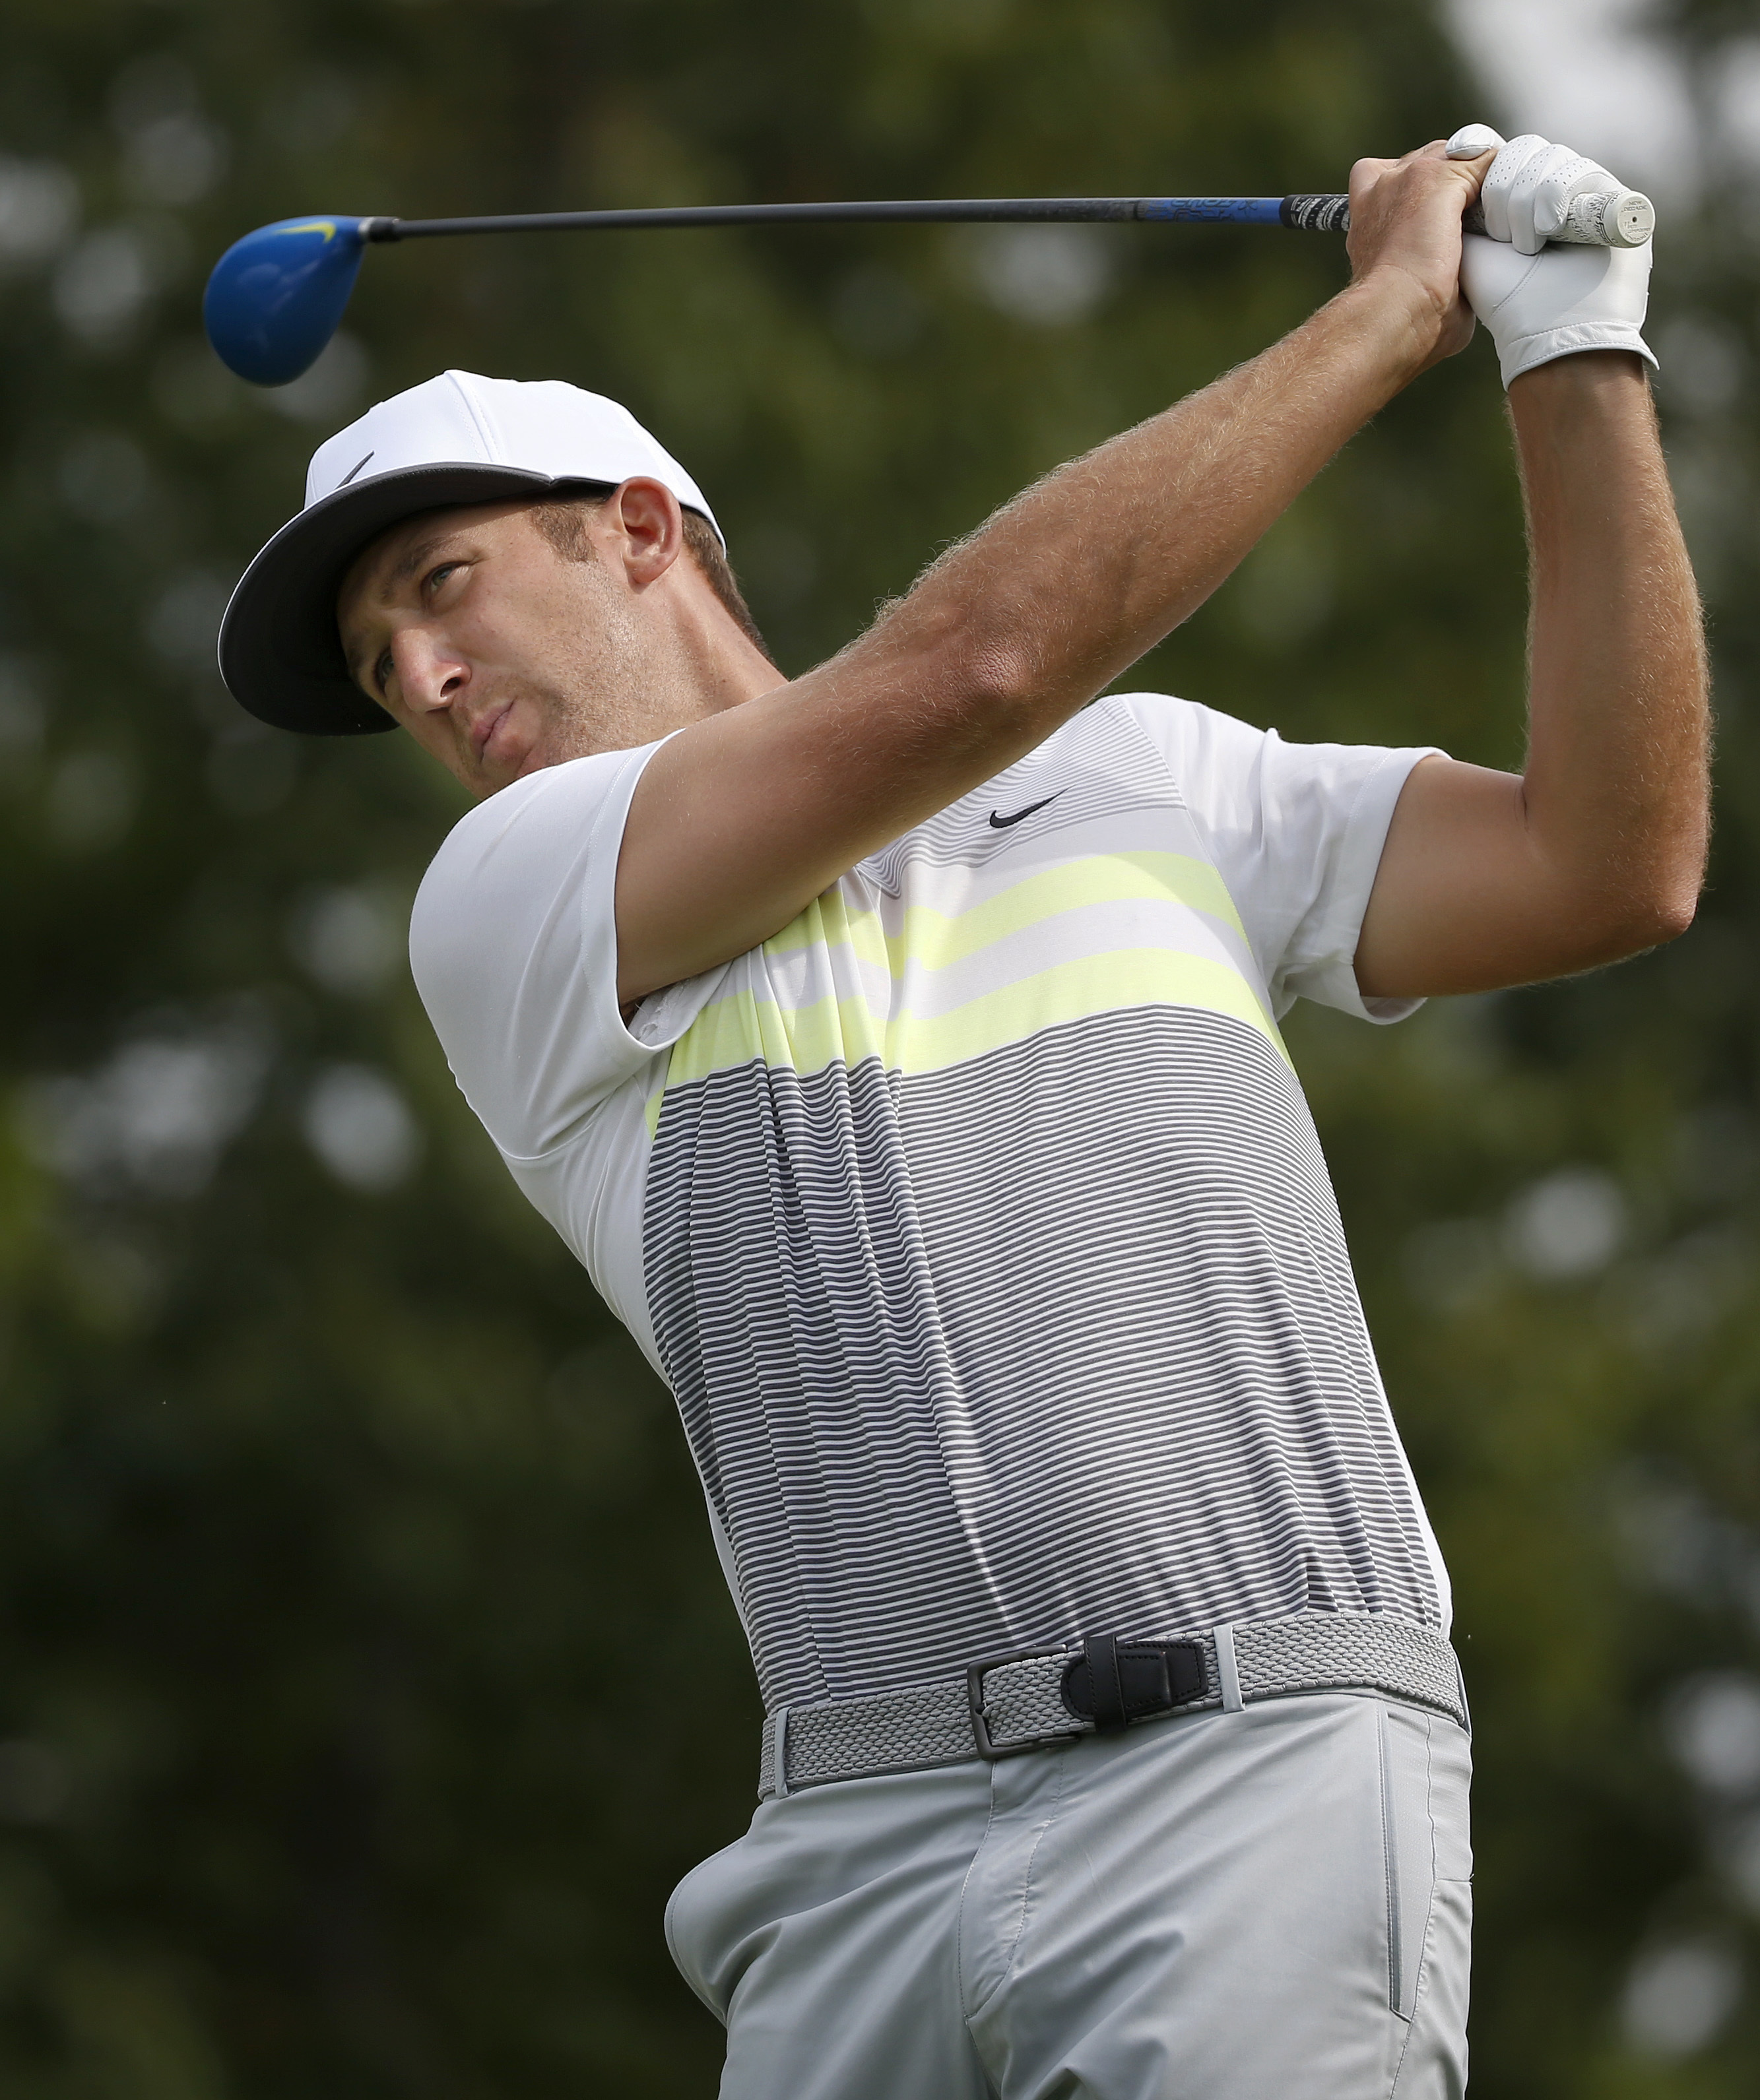 Kevin Chappell hits his tee shot on the 10th hole during the second round of the Deutsche Bank Championship golf tournament, Saturday, Sept. 3, 2016, in Norton, Mass. (AP Photo/Michael